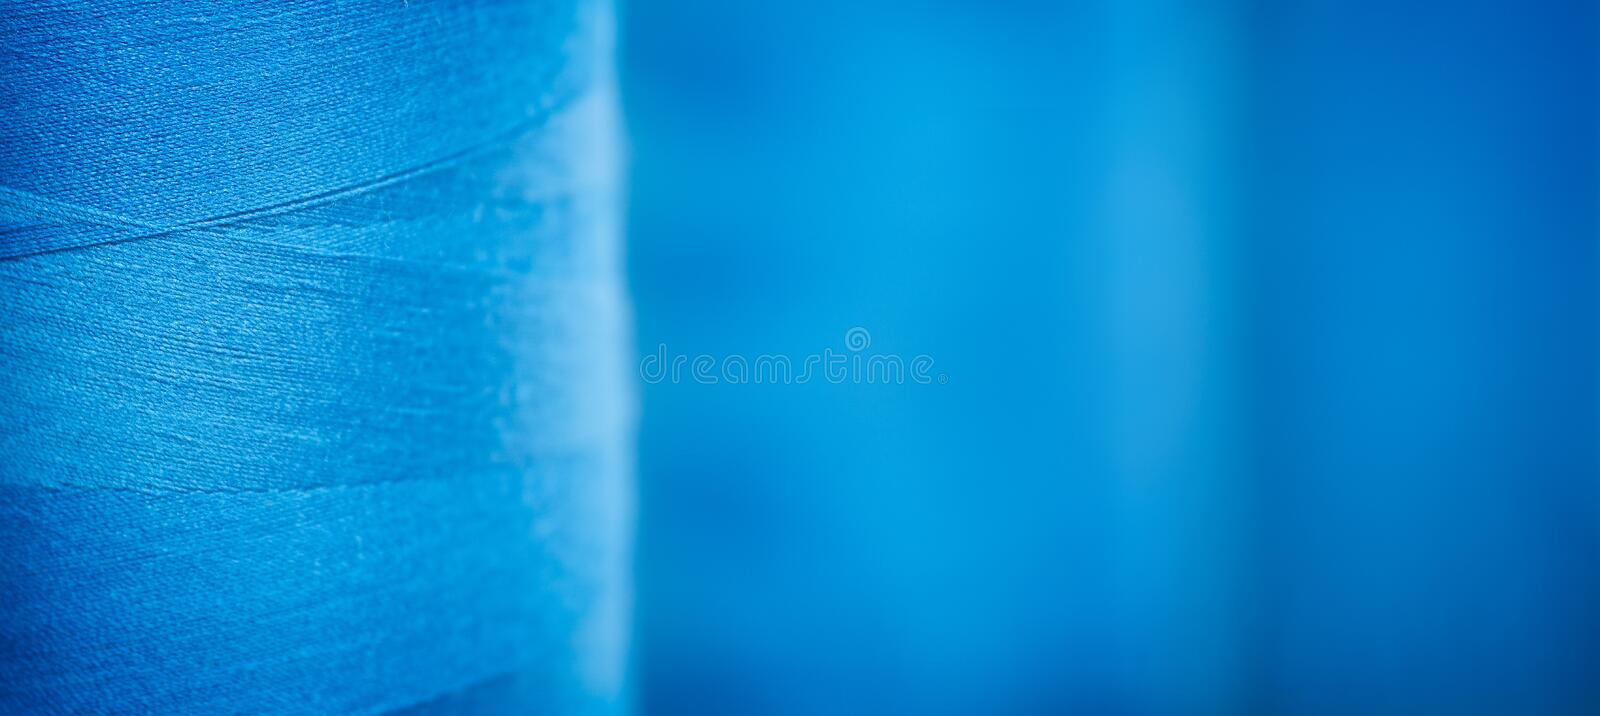 Blue textured web banner background, Close-up bobbins with blue colored thread for industrial textile machines.  royalty free stock images